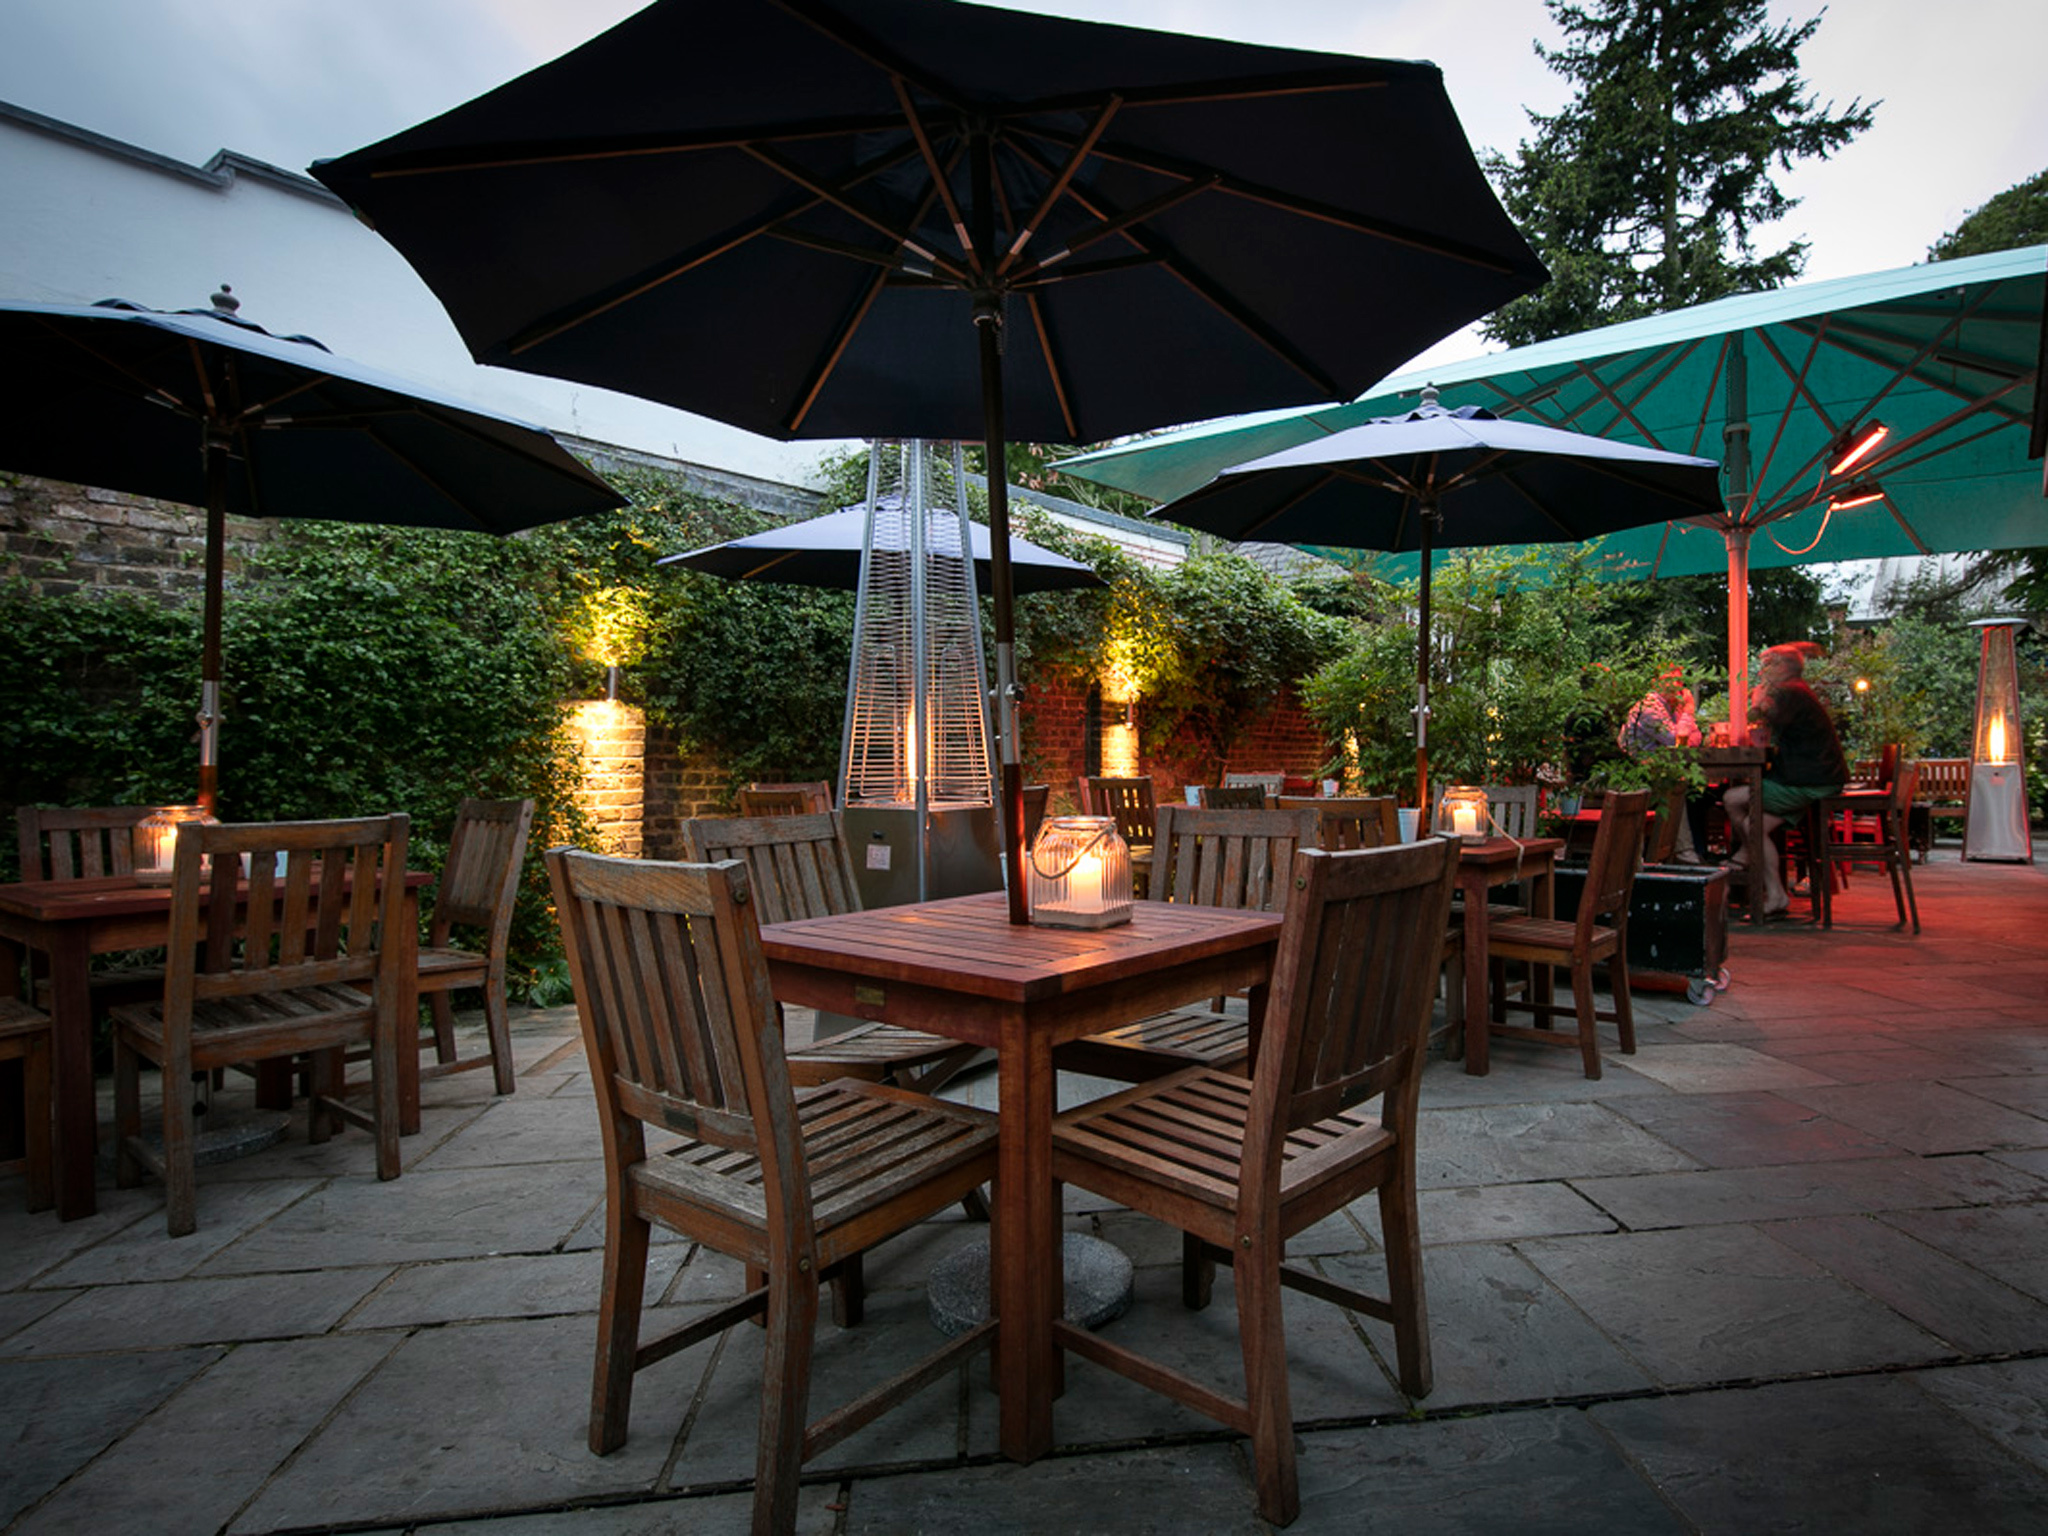 42 ace places to eat alfresco londons best outdoor restaurants